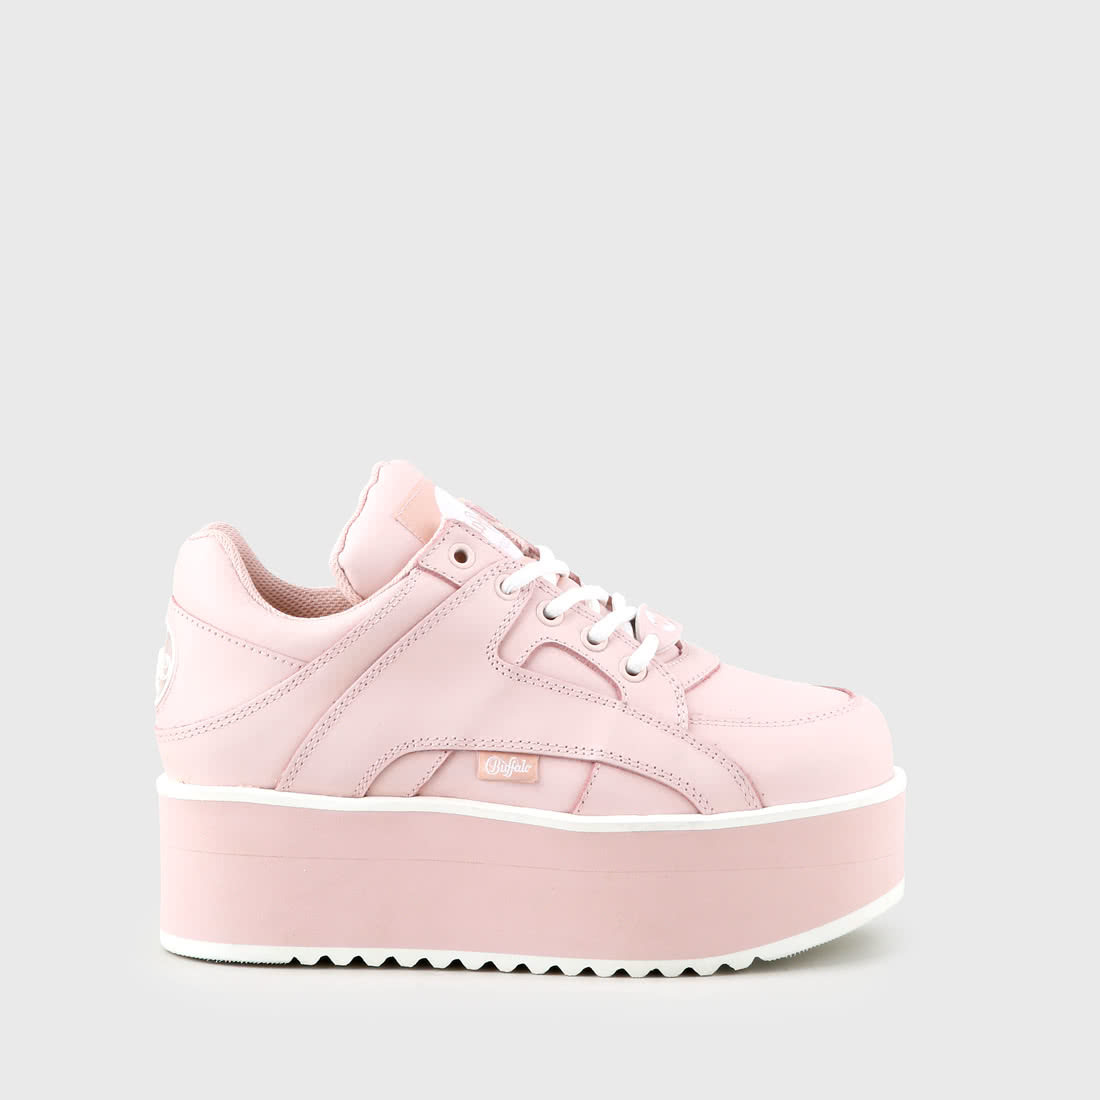 Rising Nappa Sneaker Baby Towers Pink Pnk80wO